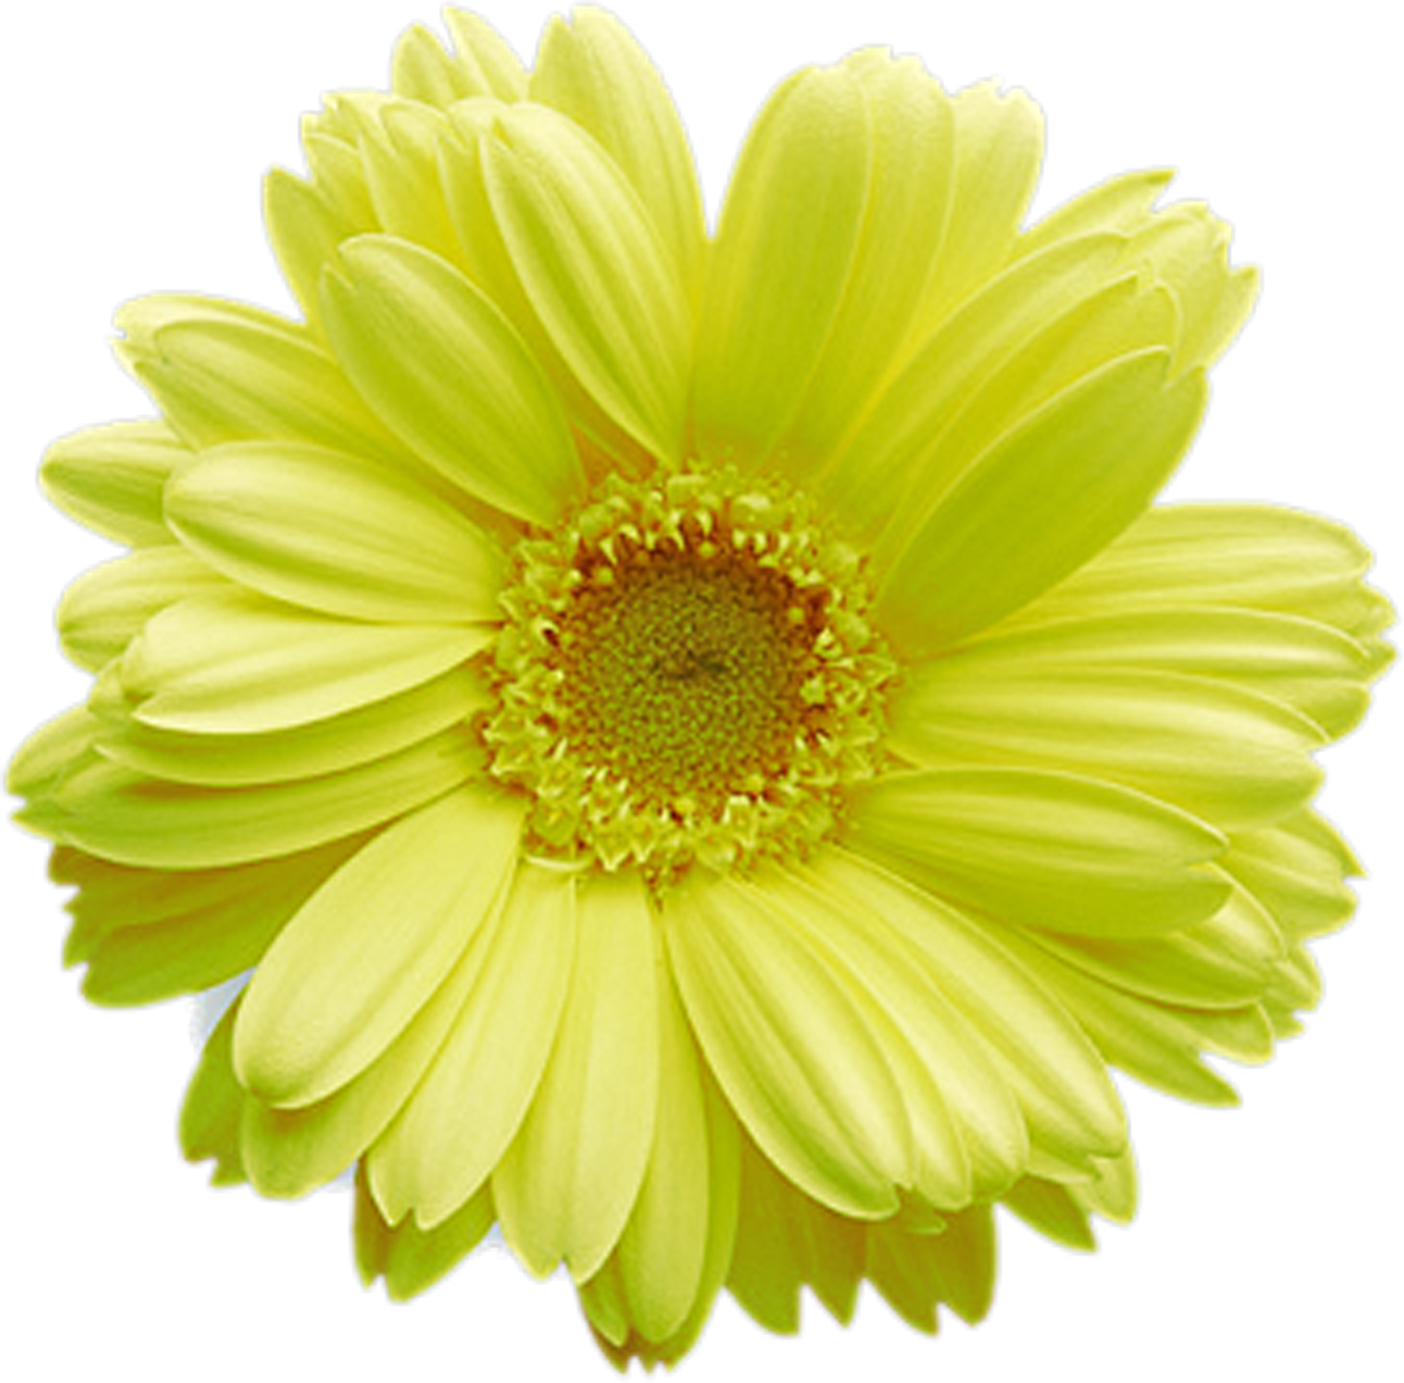 Flower Wallpaper Daisy Stems Blossoms Home Posts Trunks Flowers Messages